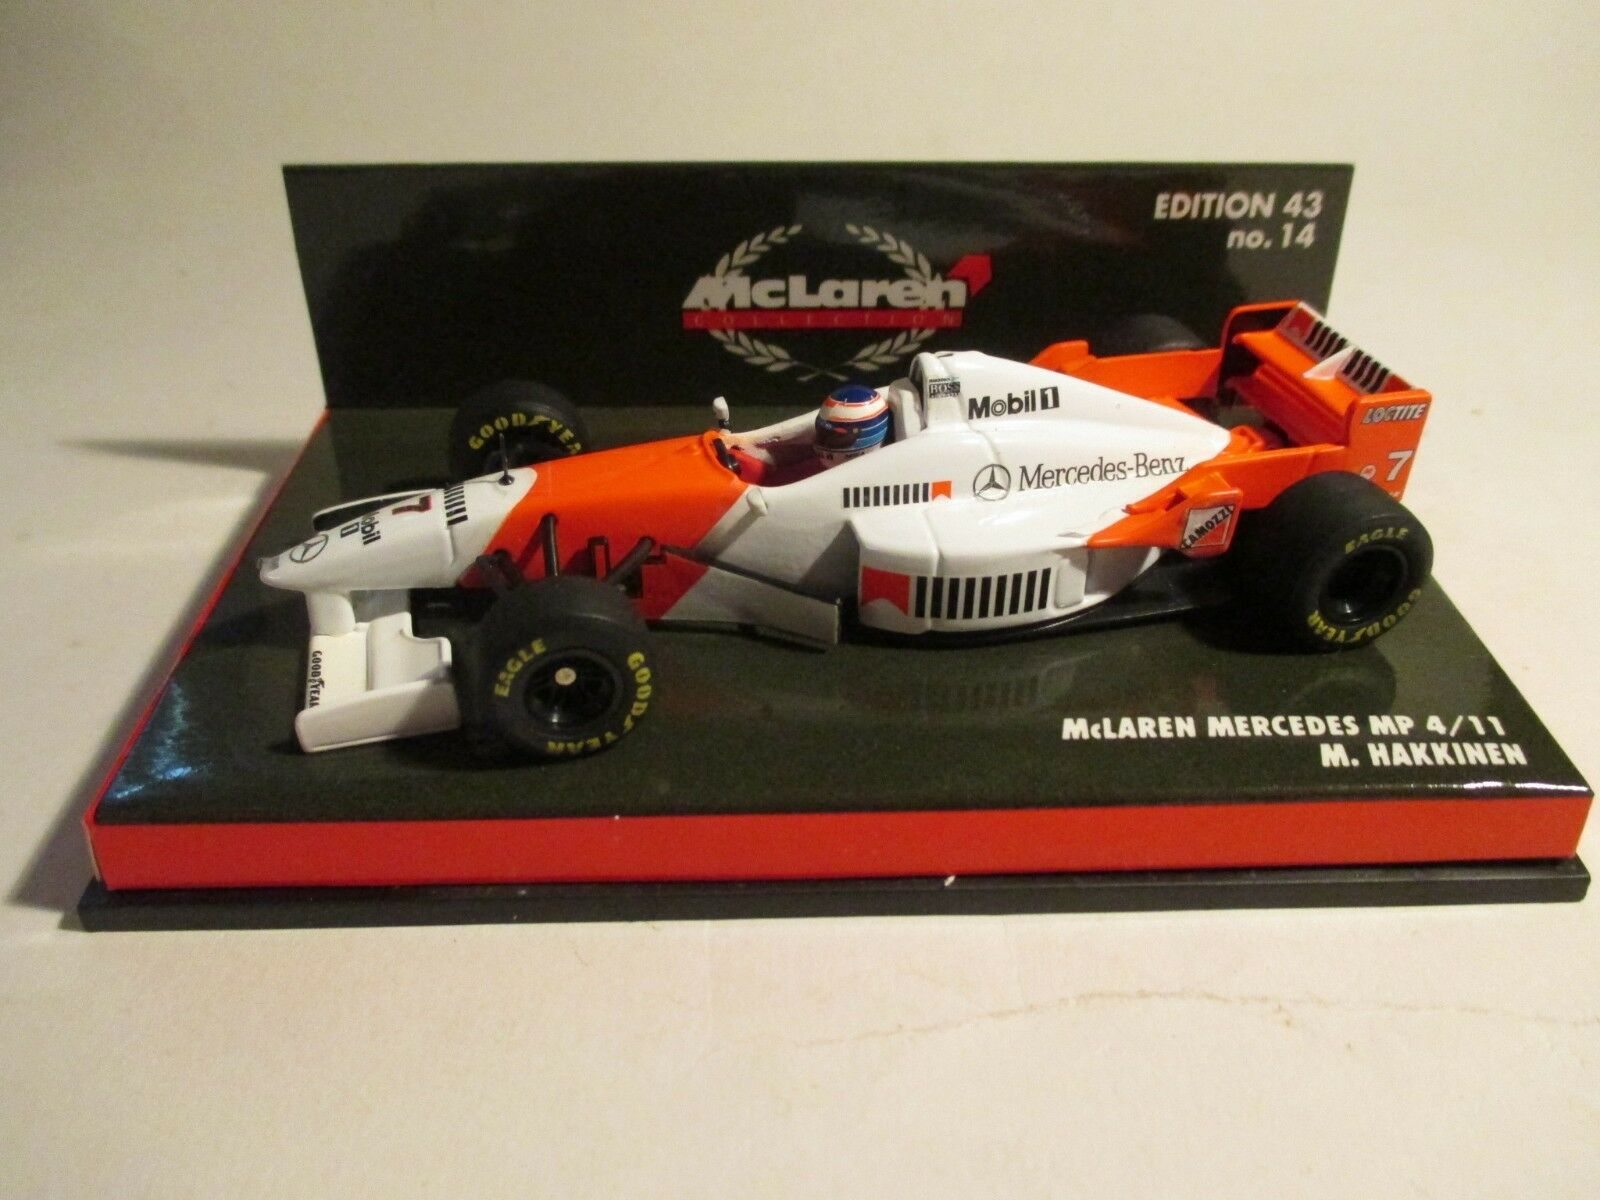 Minichamps 530964307 McLaren Mercedes MP4 11 Hakkinen 1996 1 43 MIB